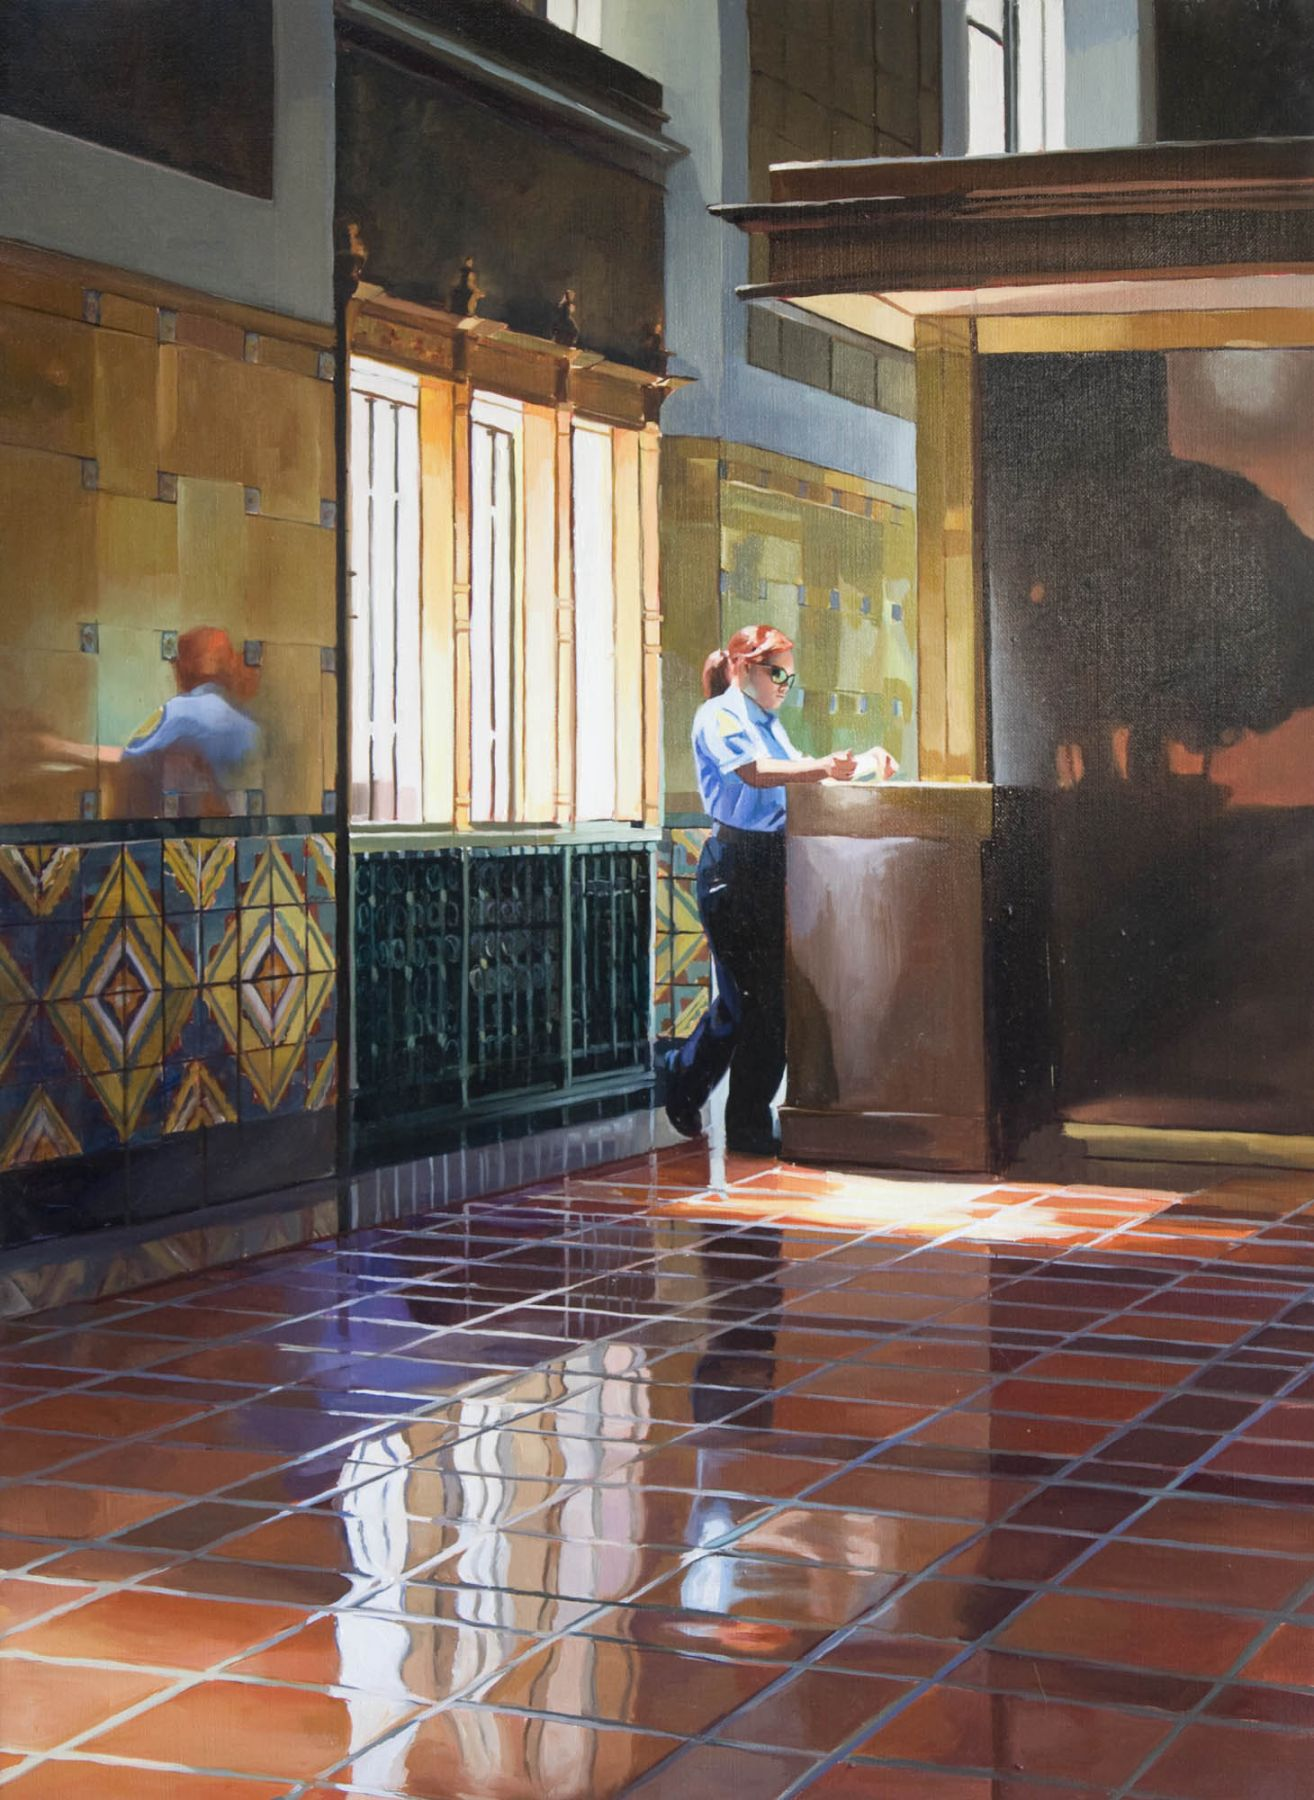 Patricia Chidlaw, Security, Union Station,